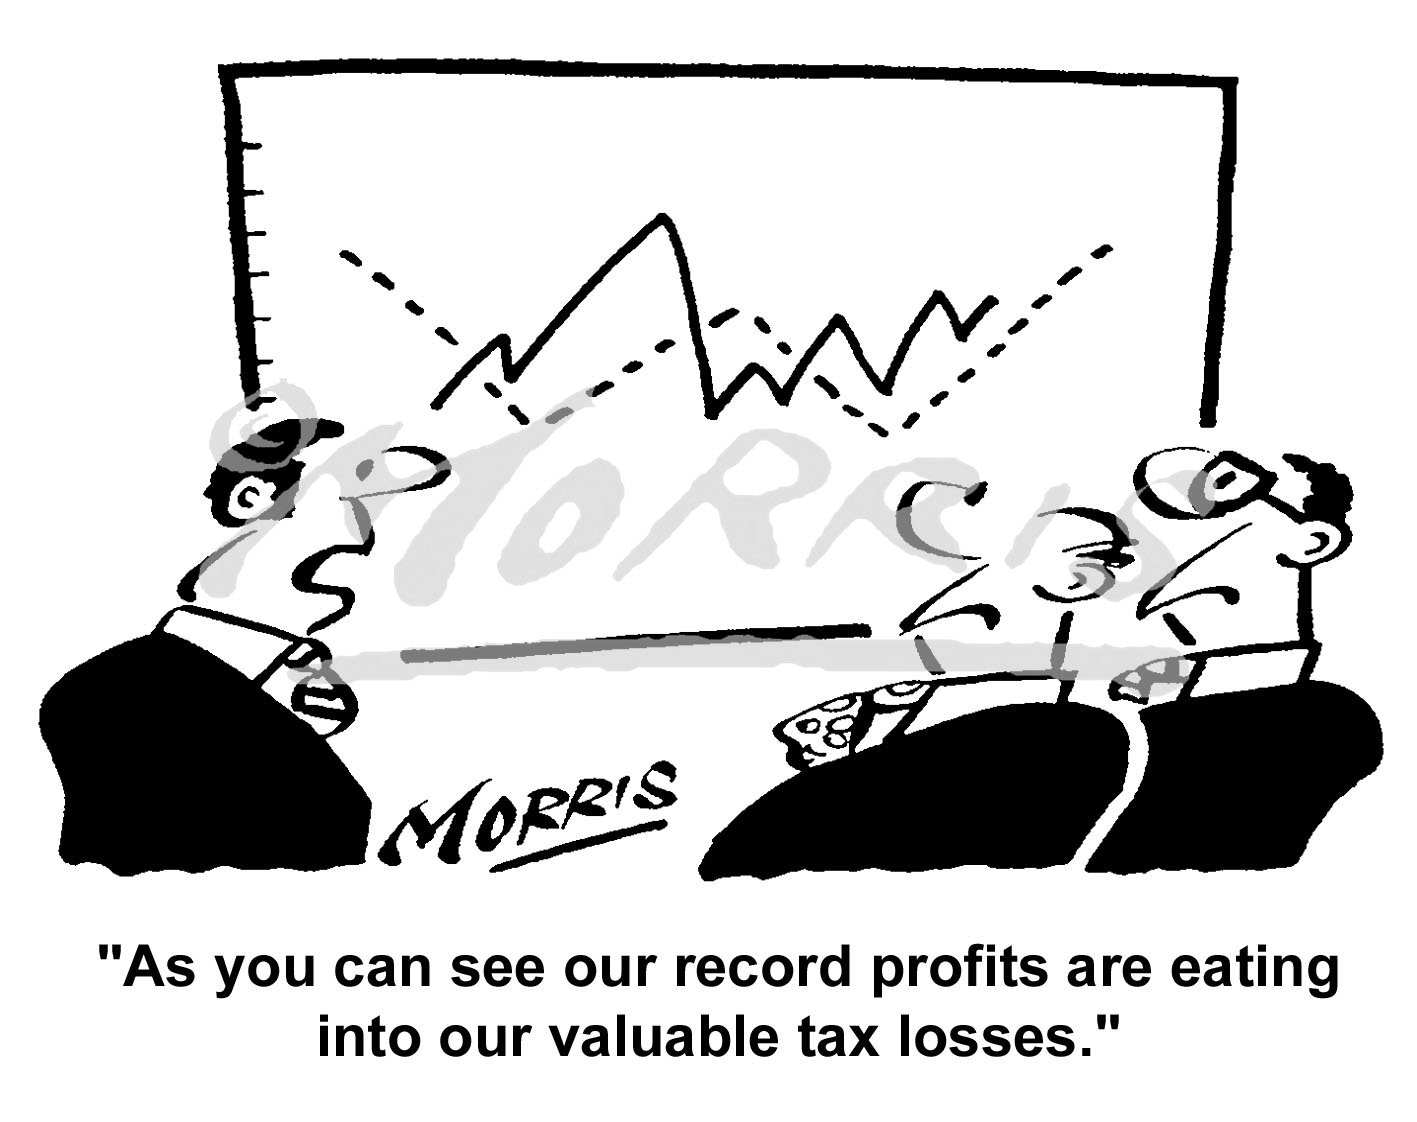 Record profits tax losses cartoon – Ref: 5041bw